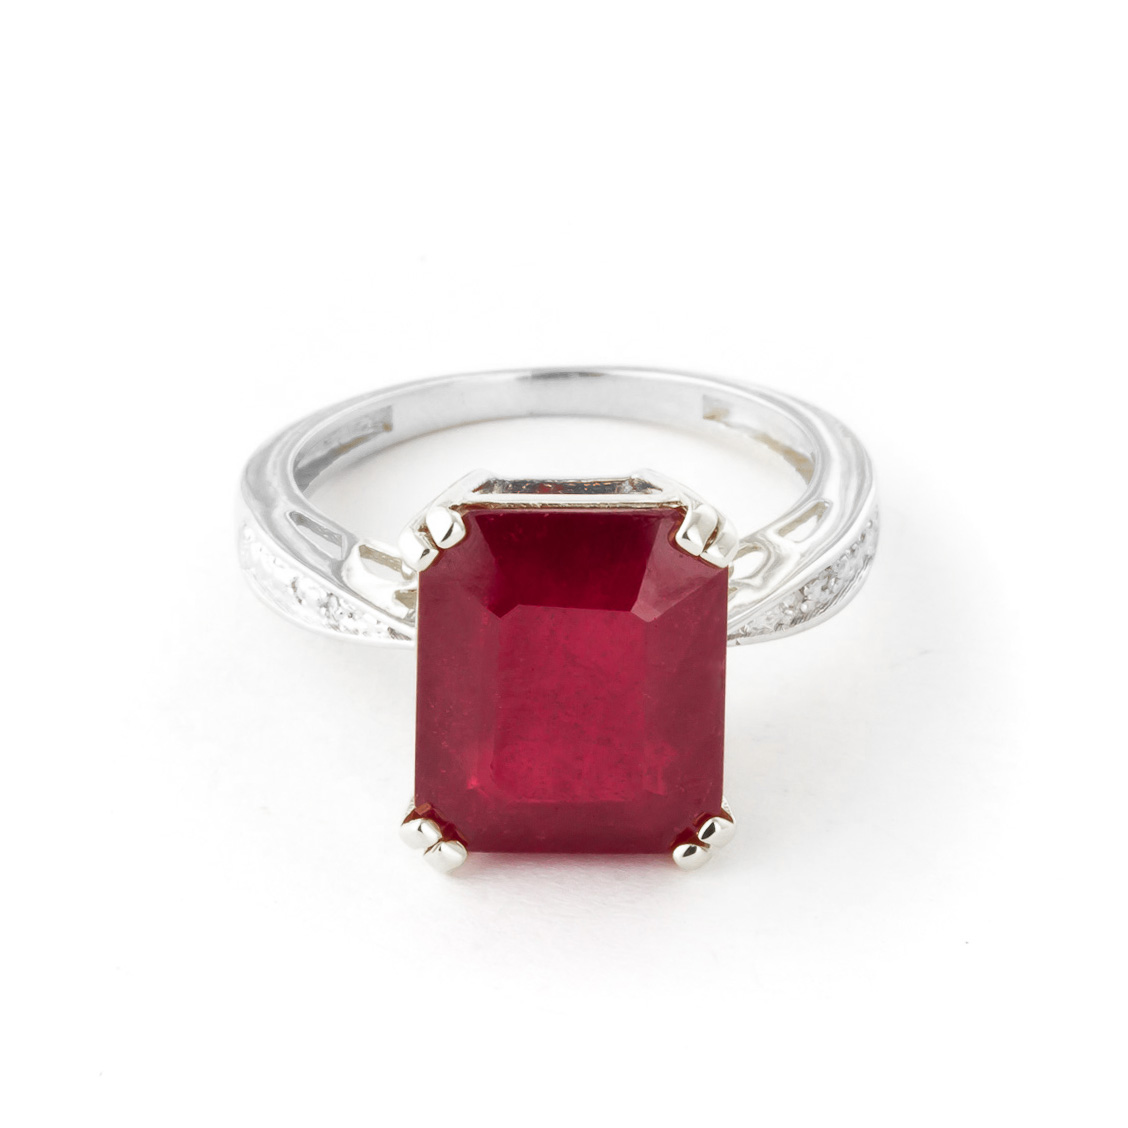 Octagon Cut Ruby Ring 7.27 ctw in 18ct White Gold